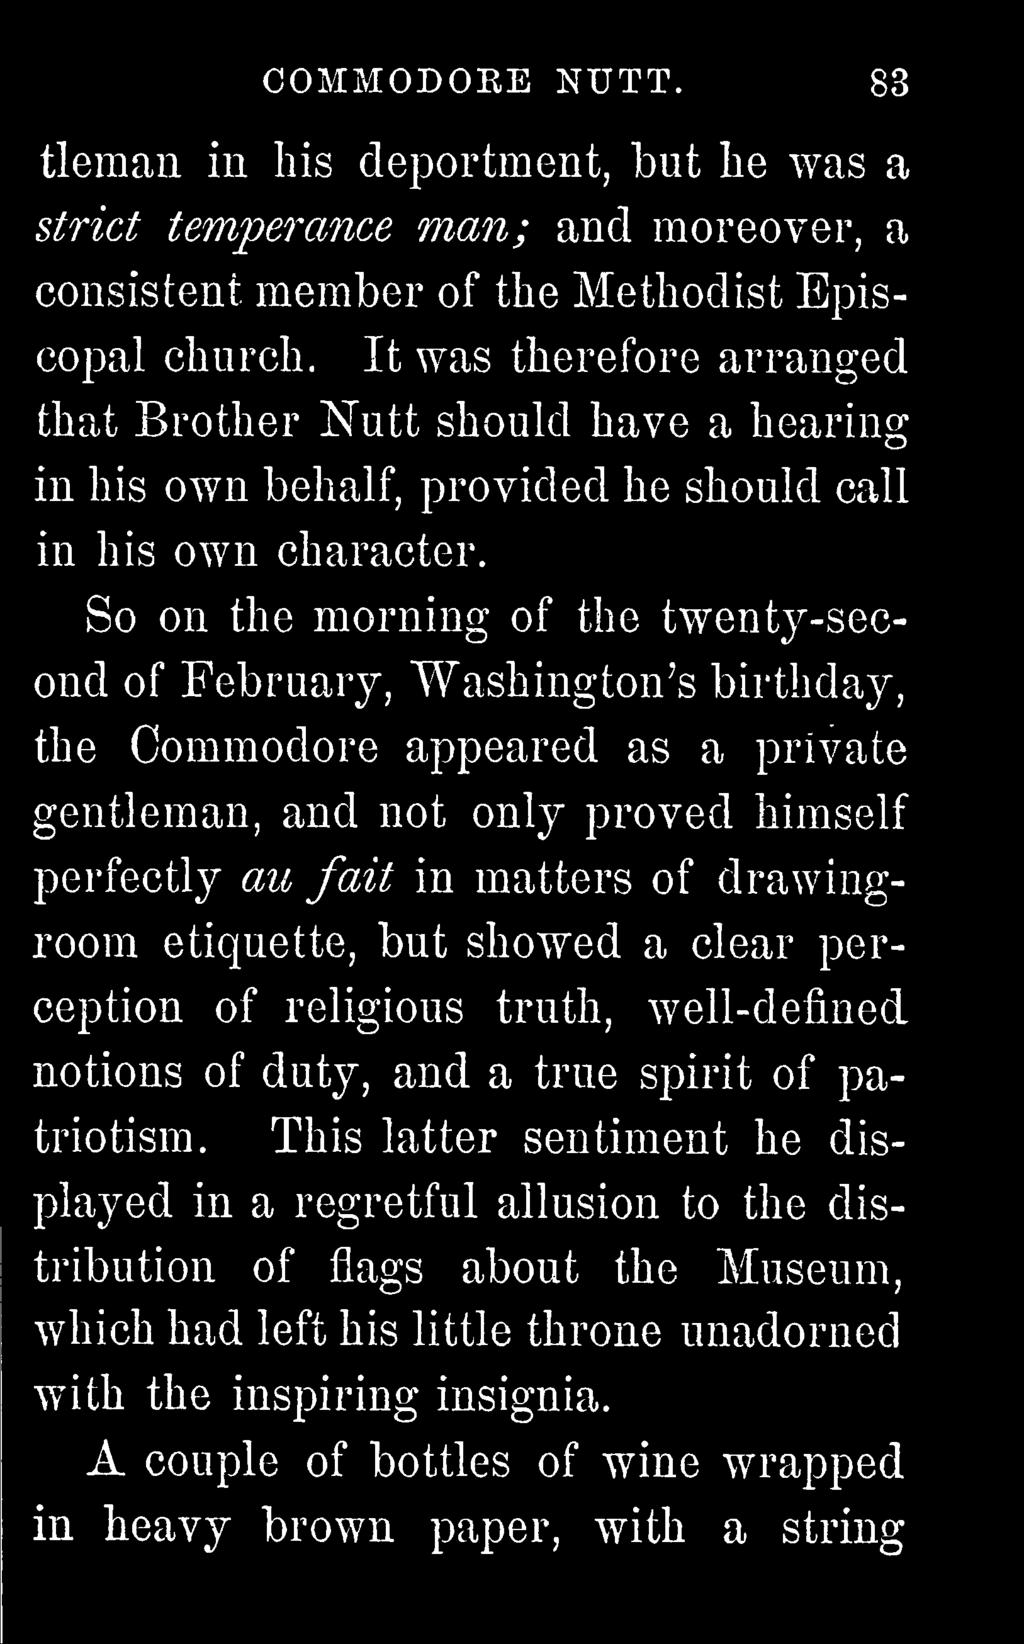 he should call So on the morning of the twenty-second of February, Washington's birthday, the Commodore appeared as a private gentleman, and not only proved himself perfectly au fait in matters of